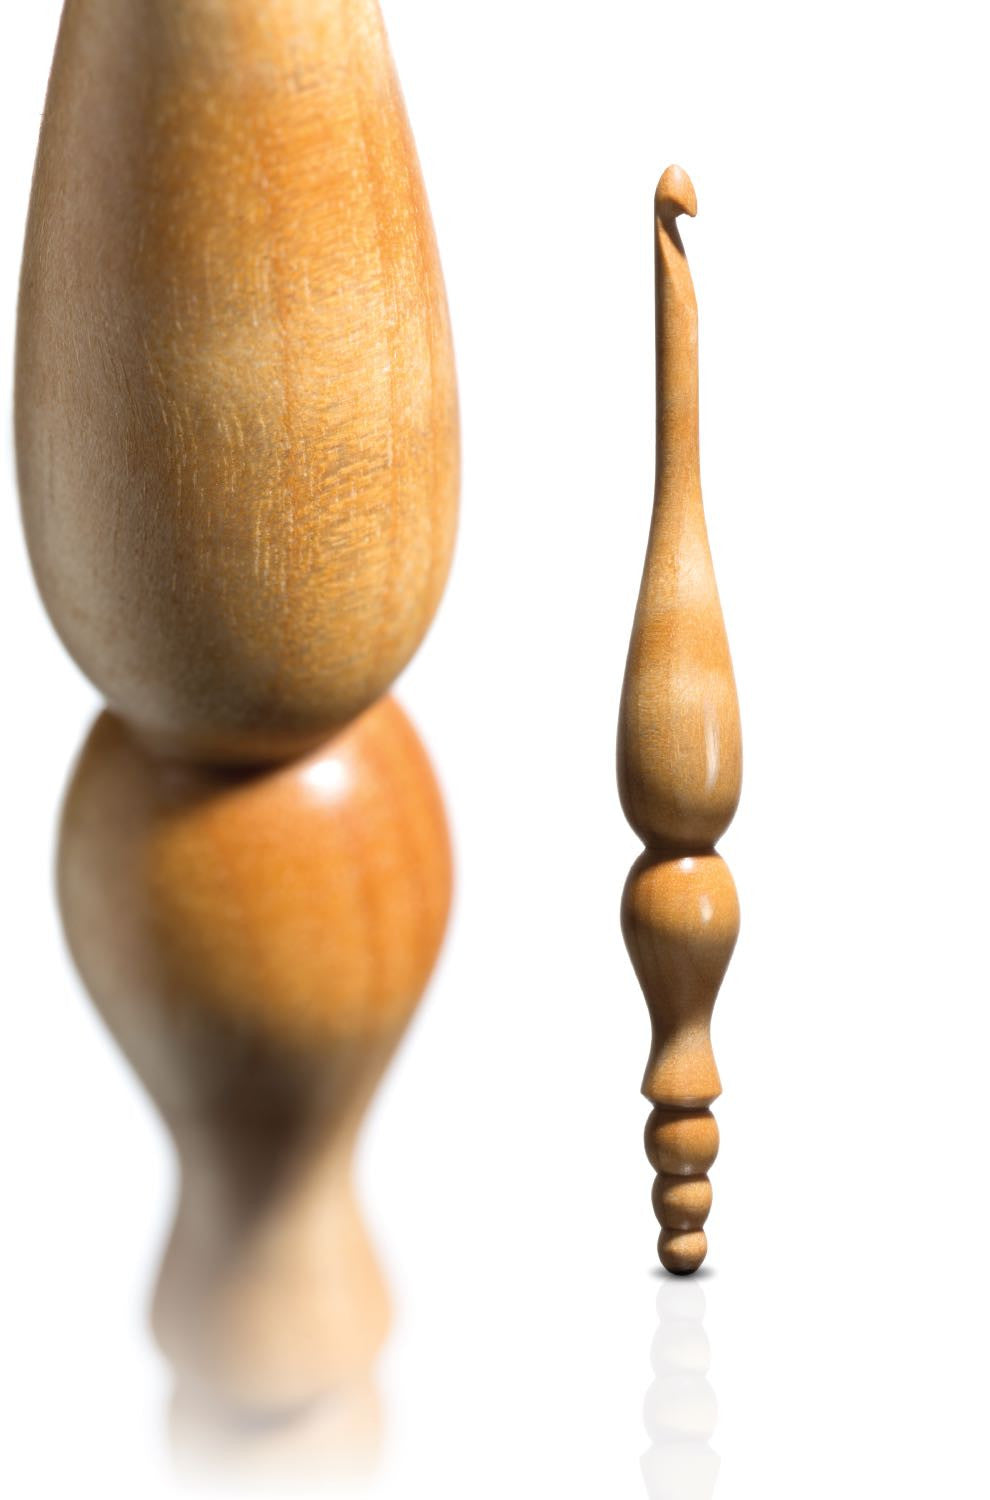 Limited Edition Canarywood Crochet Hooks